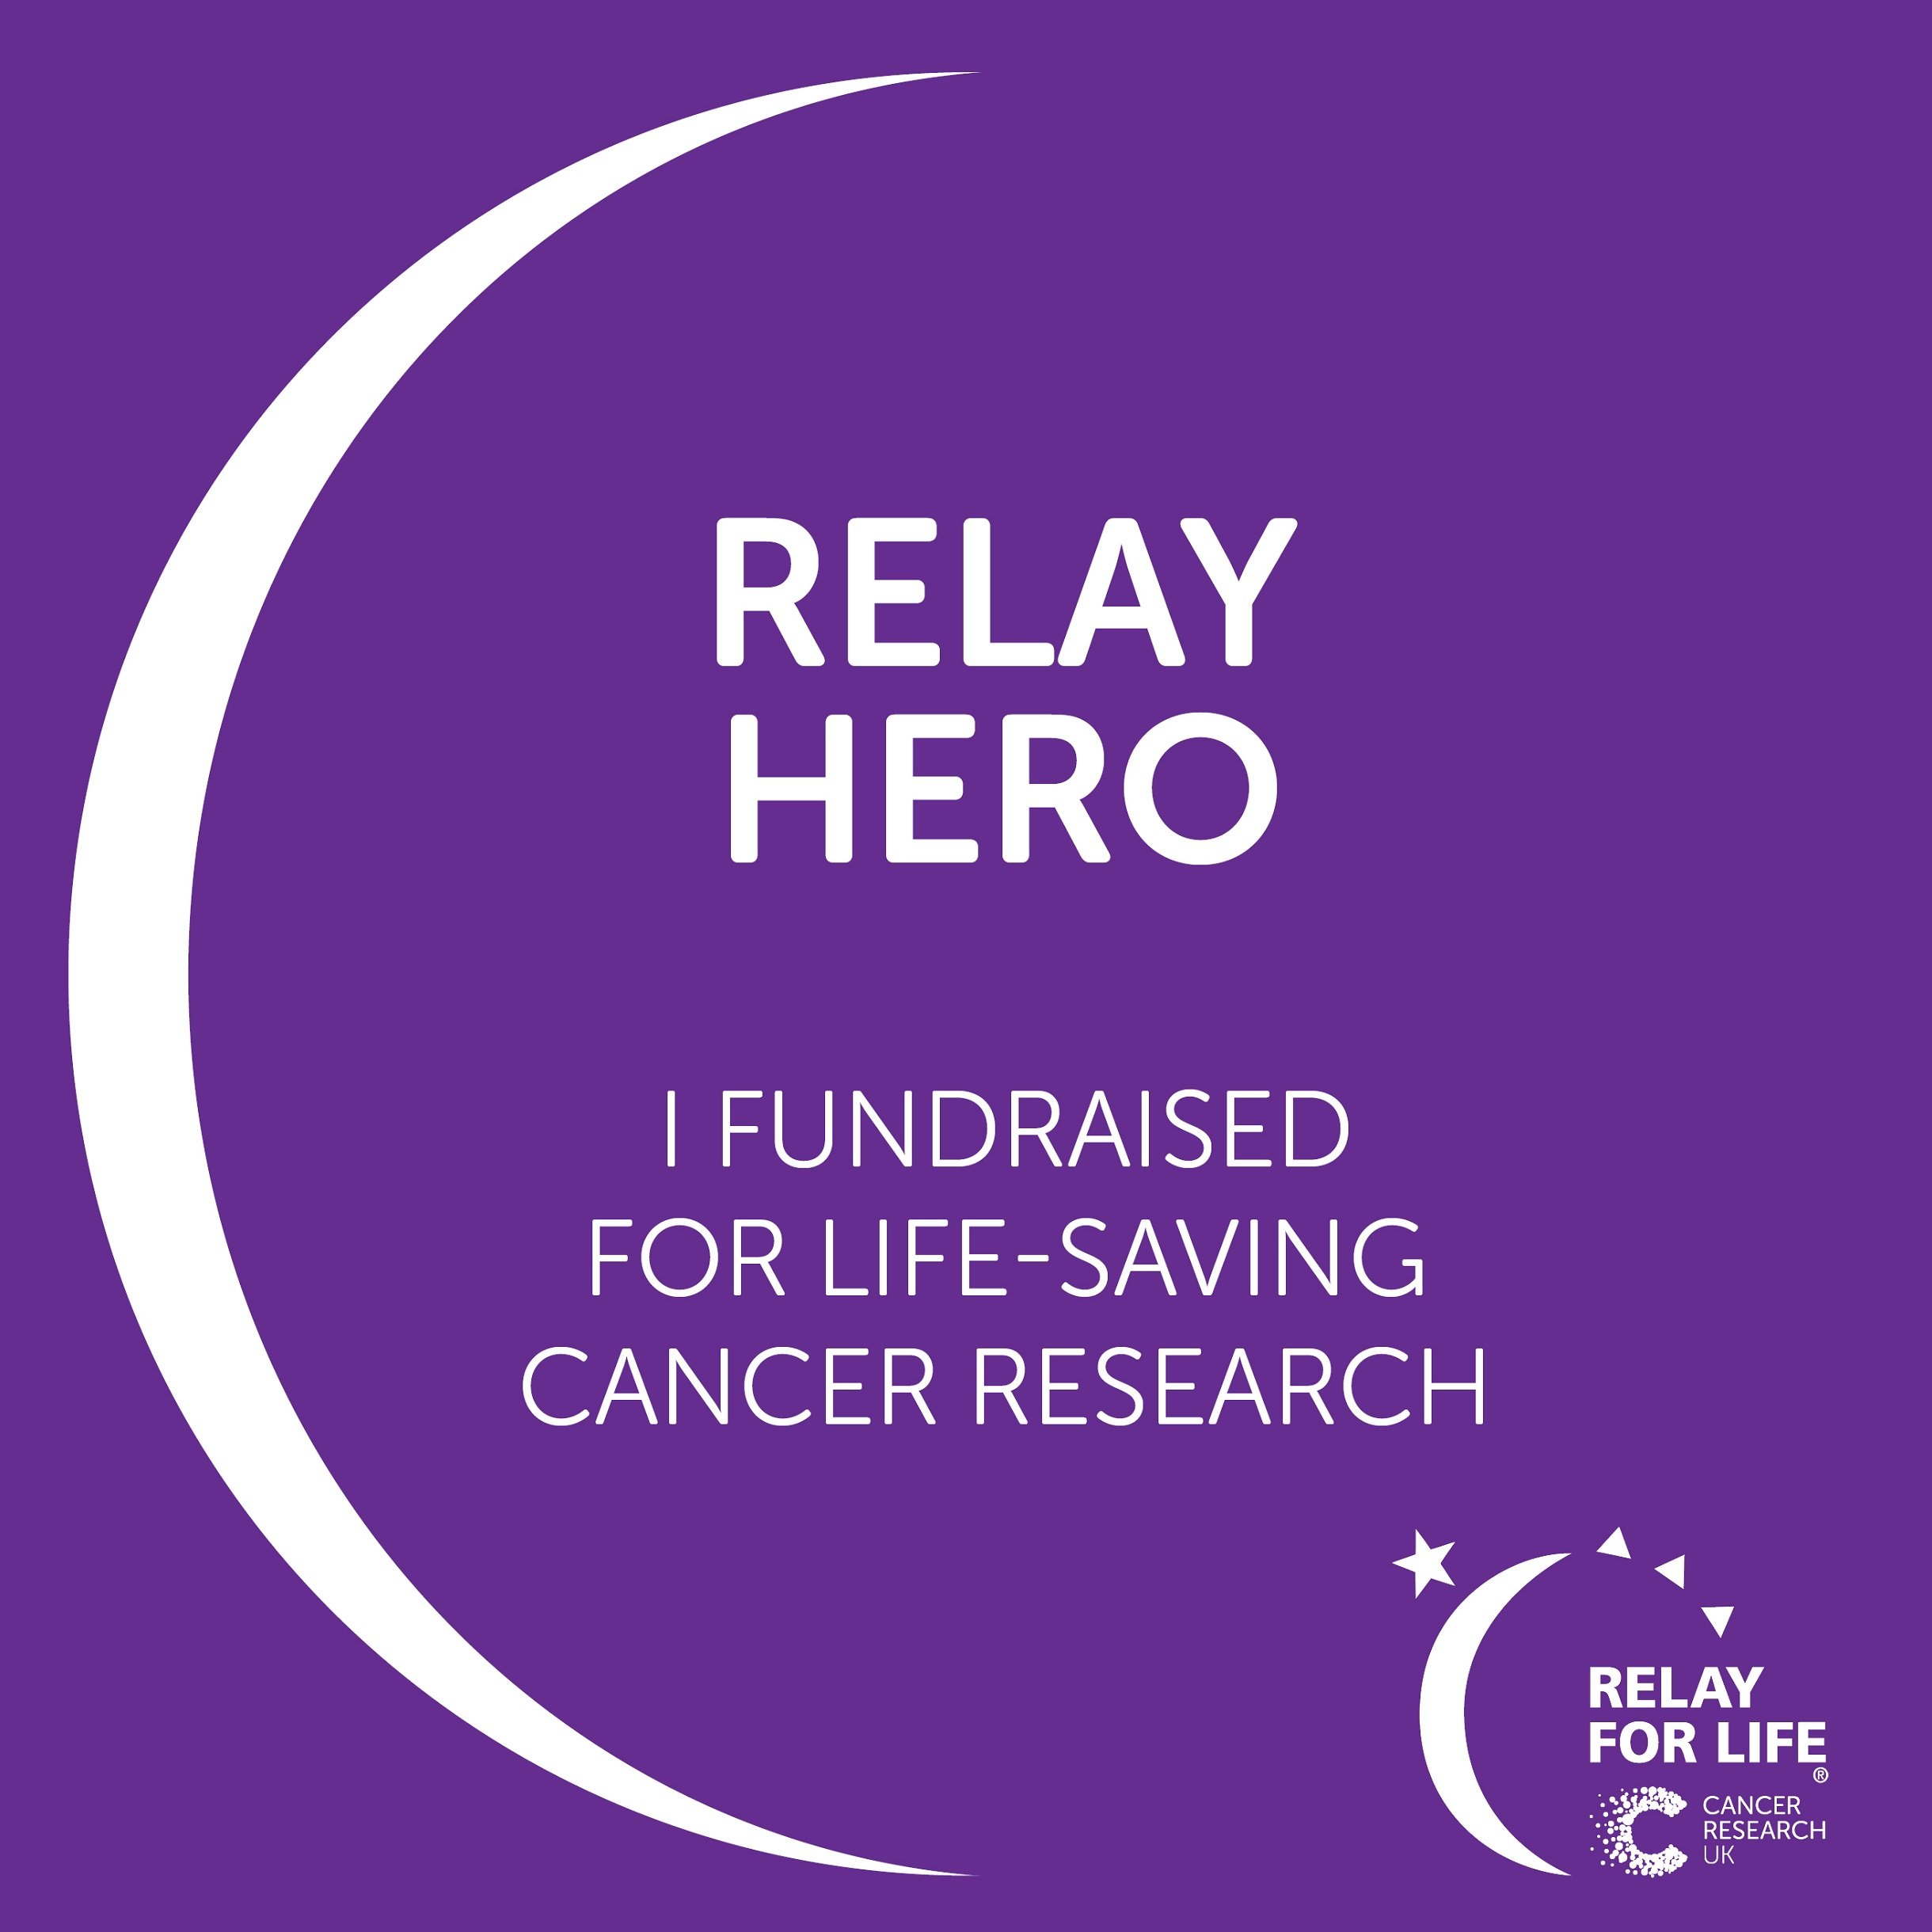 Tools and resources relay for life cancer research uk for Relay for life flyer template